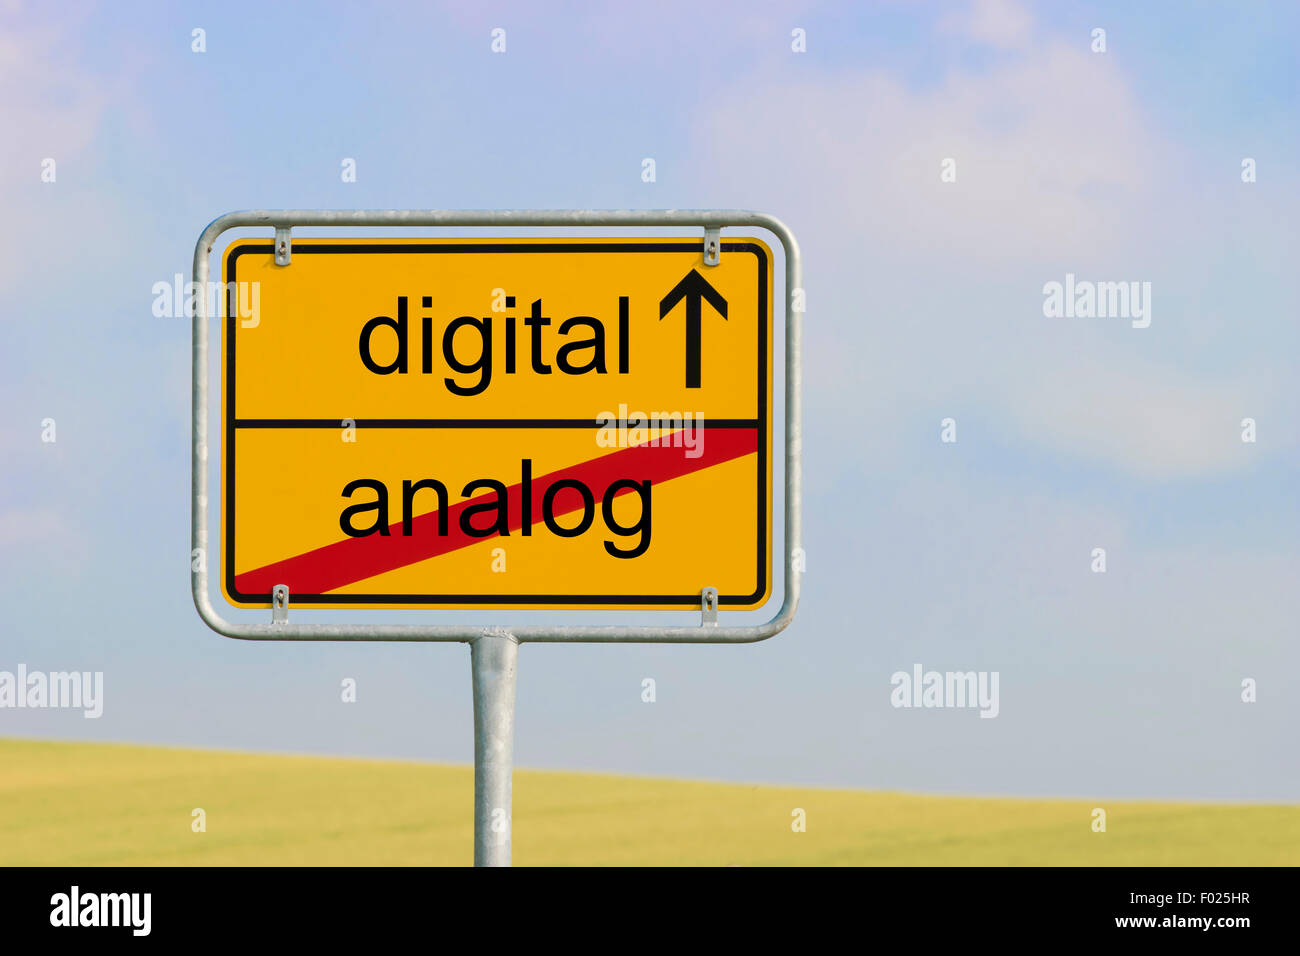 Yellow town sign with text 'digital analog' - Stock Image